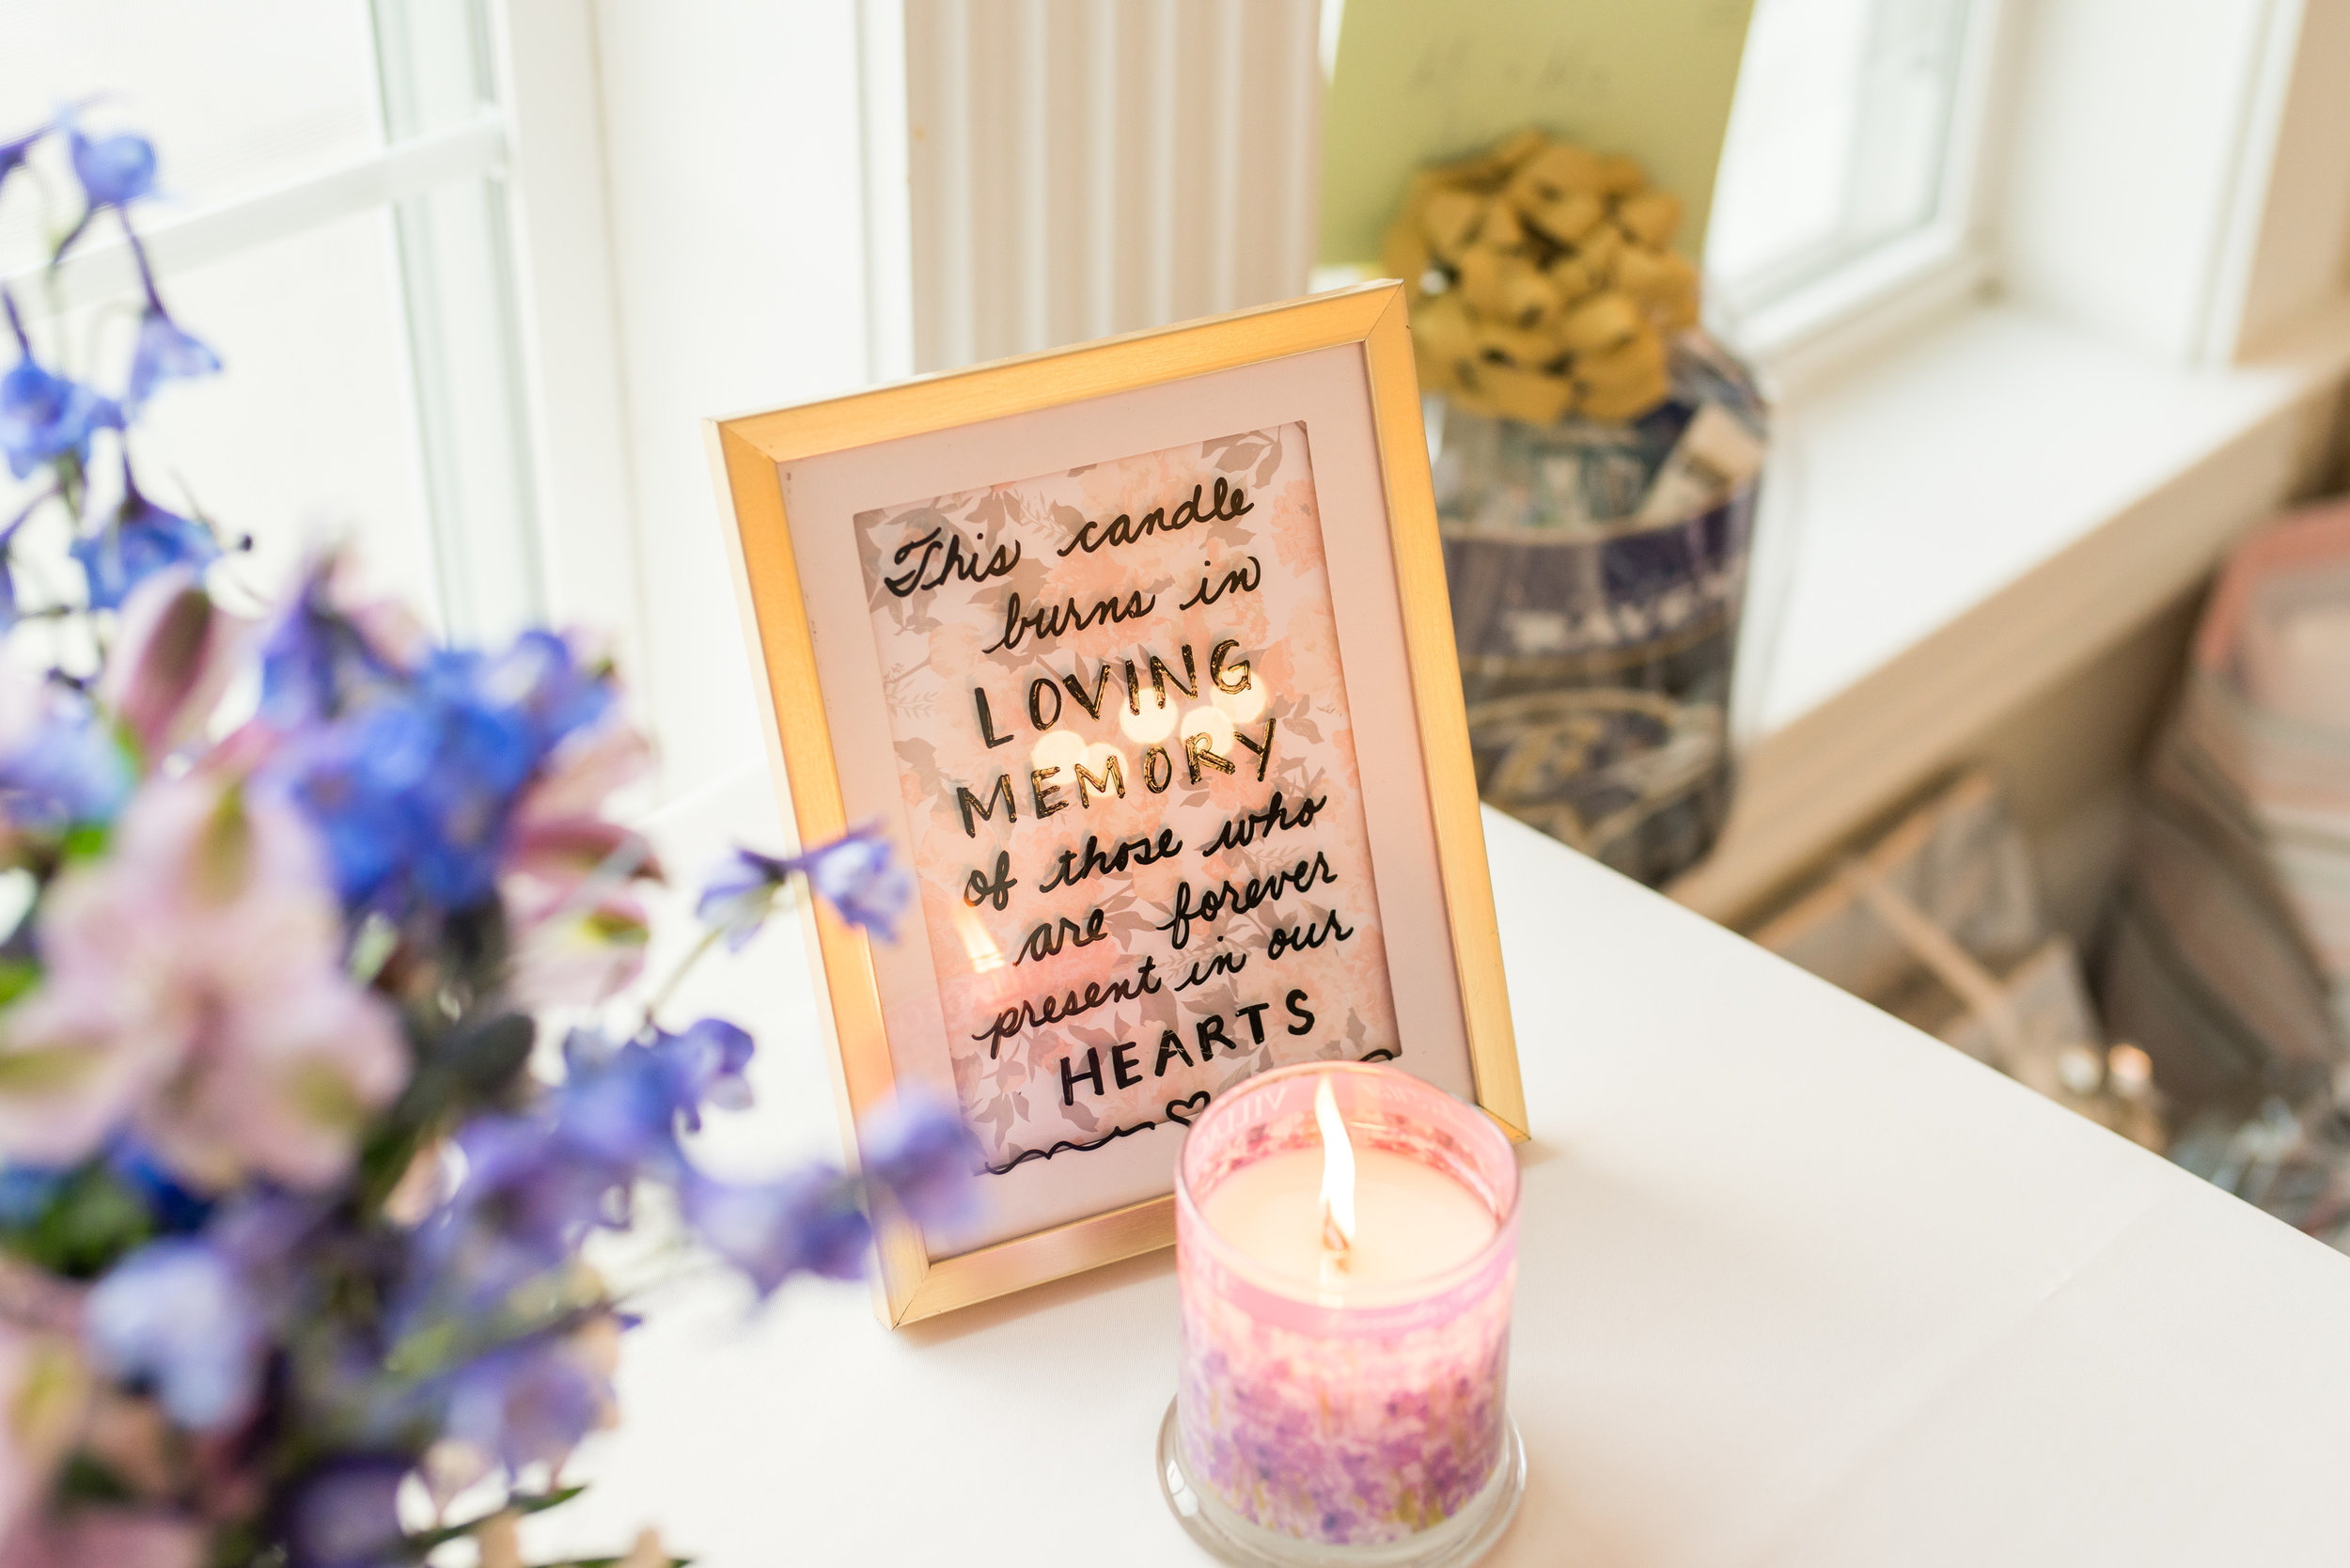 Memorial candle at wedding reception table